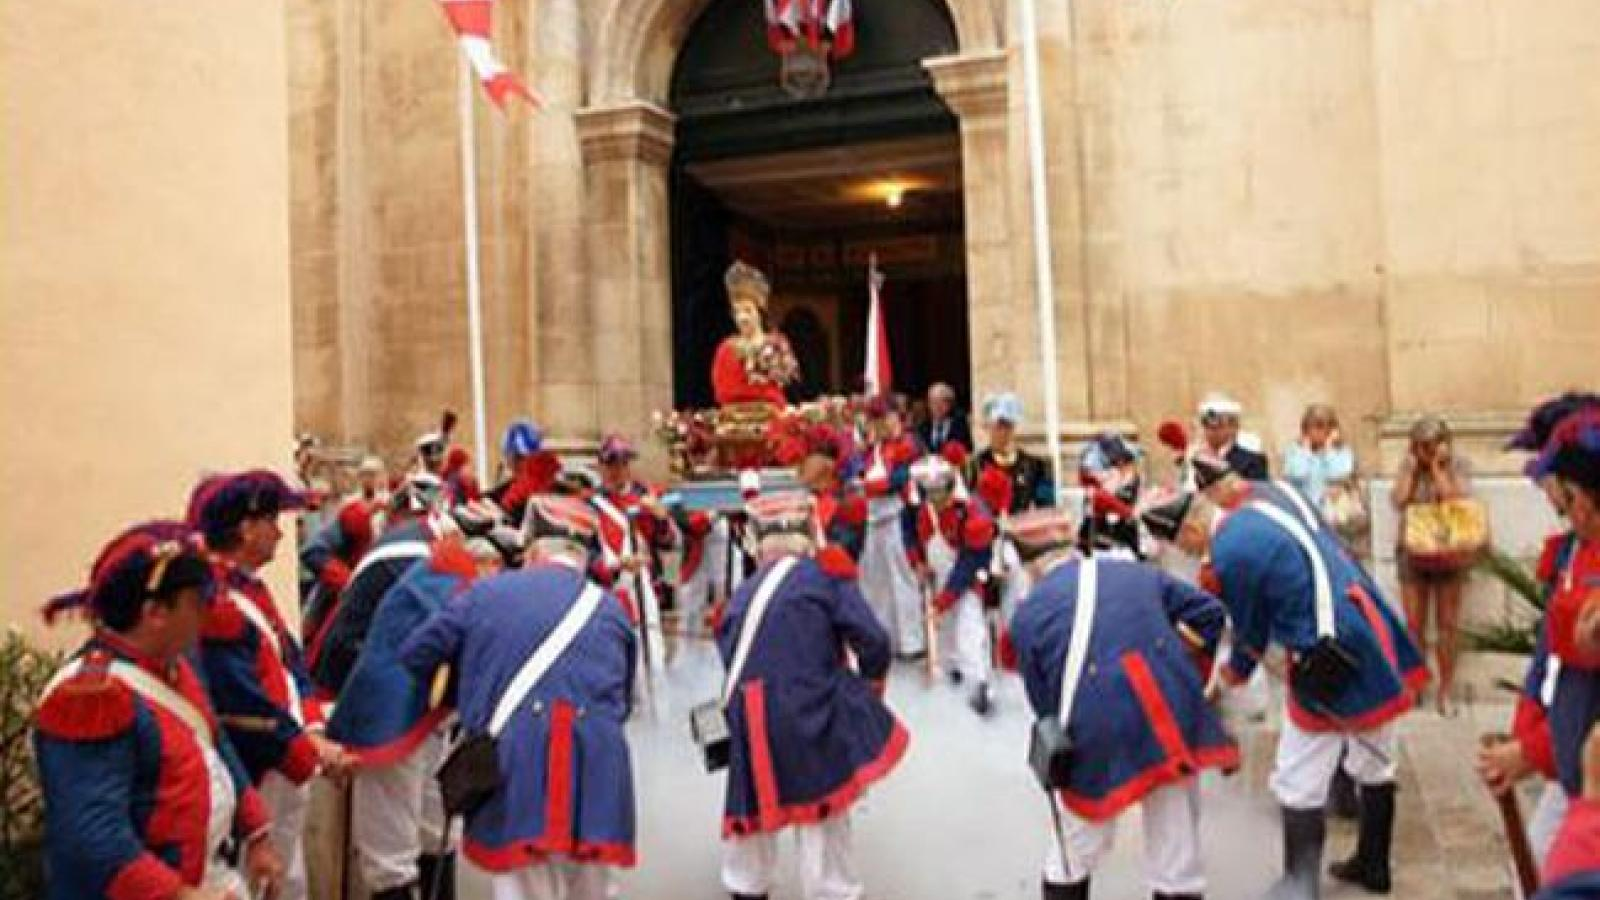 Feast in St Tropez 2014 is a unique traditional celebration